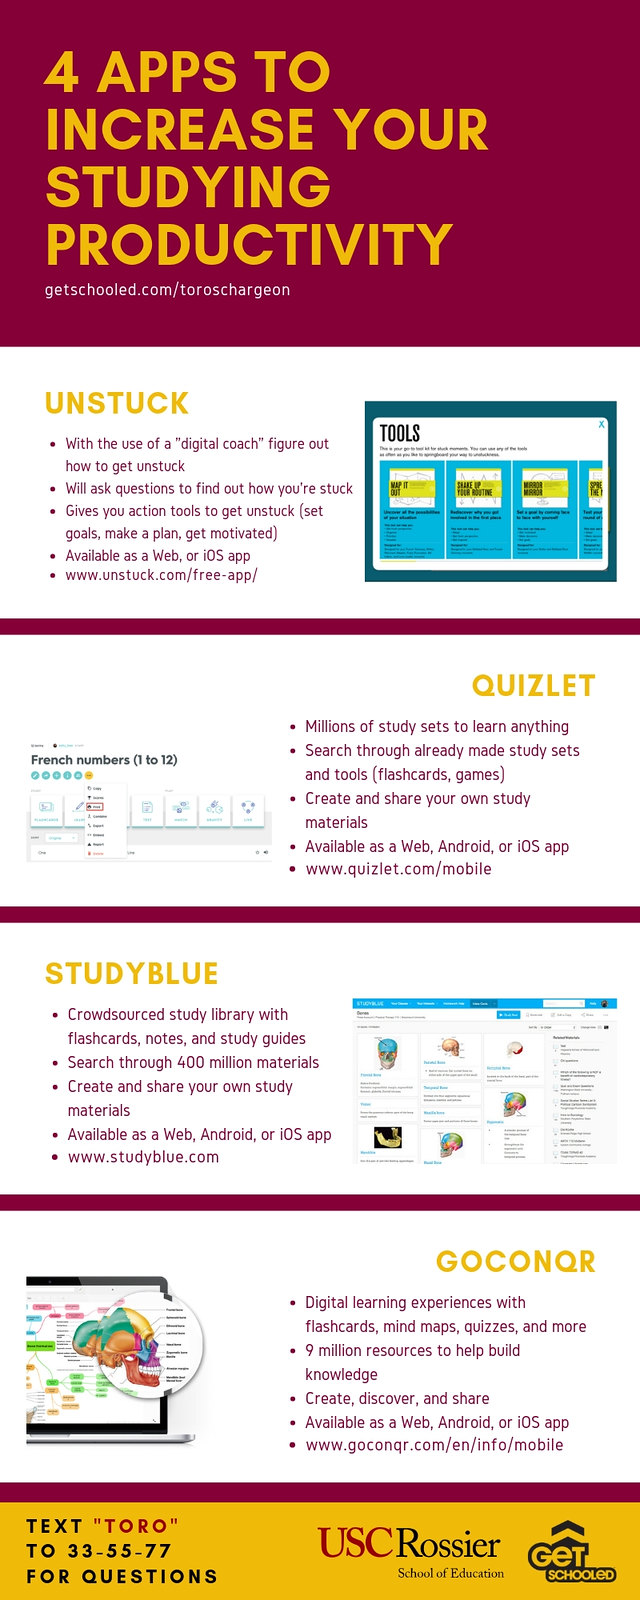 PDF Of 4 Apps To Increase Your Studying Productivity infographic